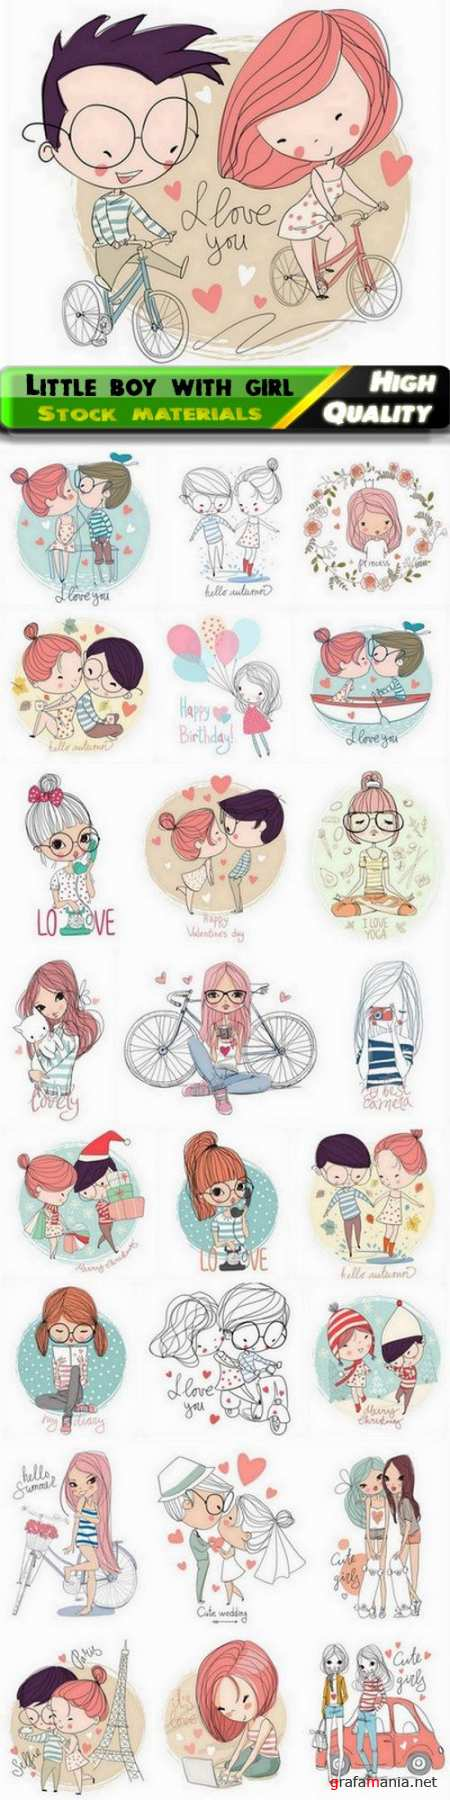 Sketches of cute little boy with girl and romantic couple - 25 Eps